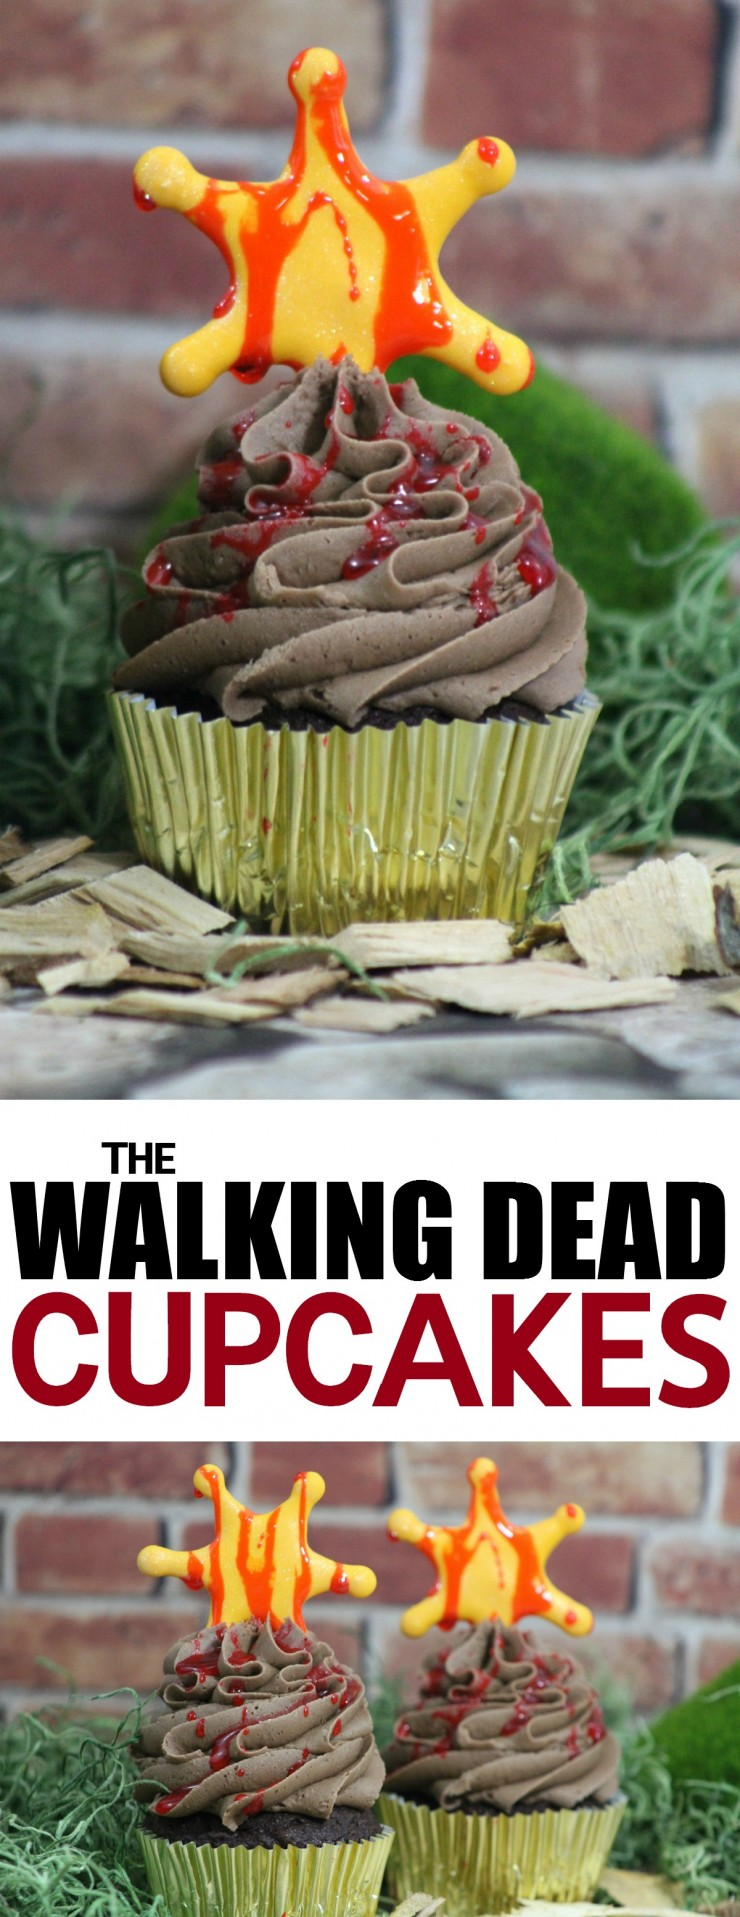 For fans of AMC's The Walking Dead these The Walking Dead Cupcakes are a great way to celebrate the upcoming season featuring Rick Grime's Sheriff Badge.